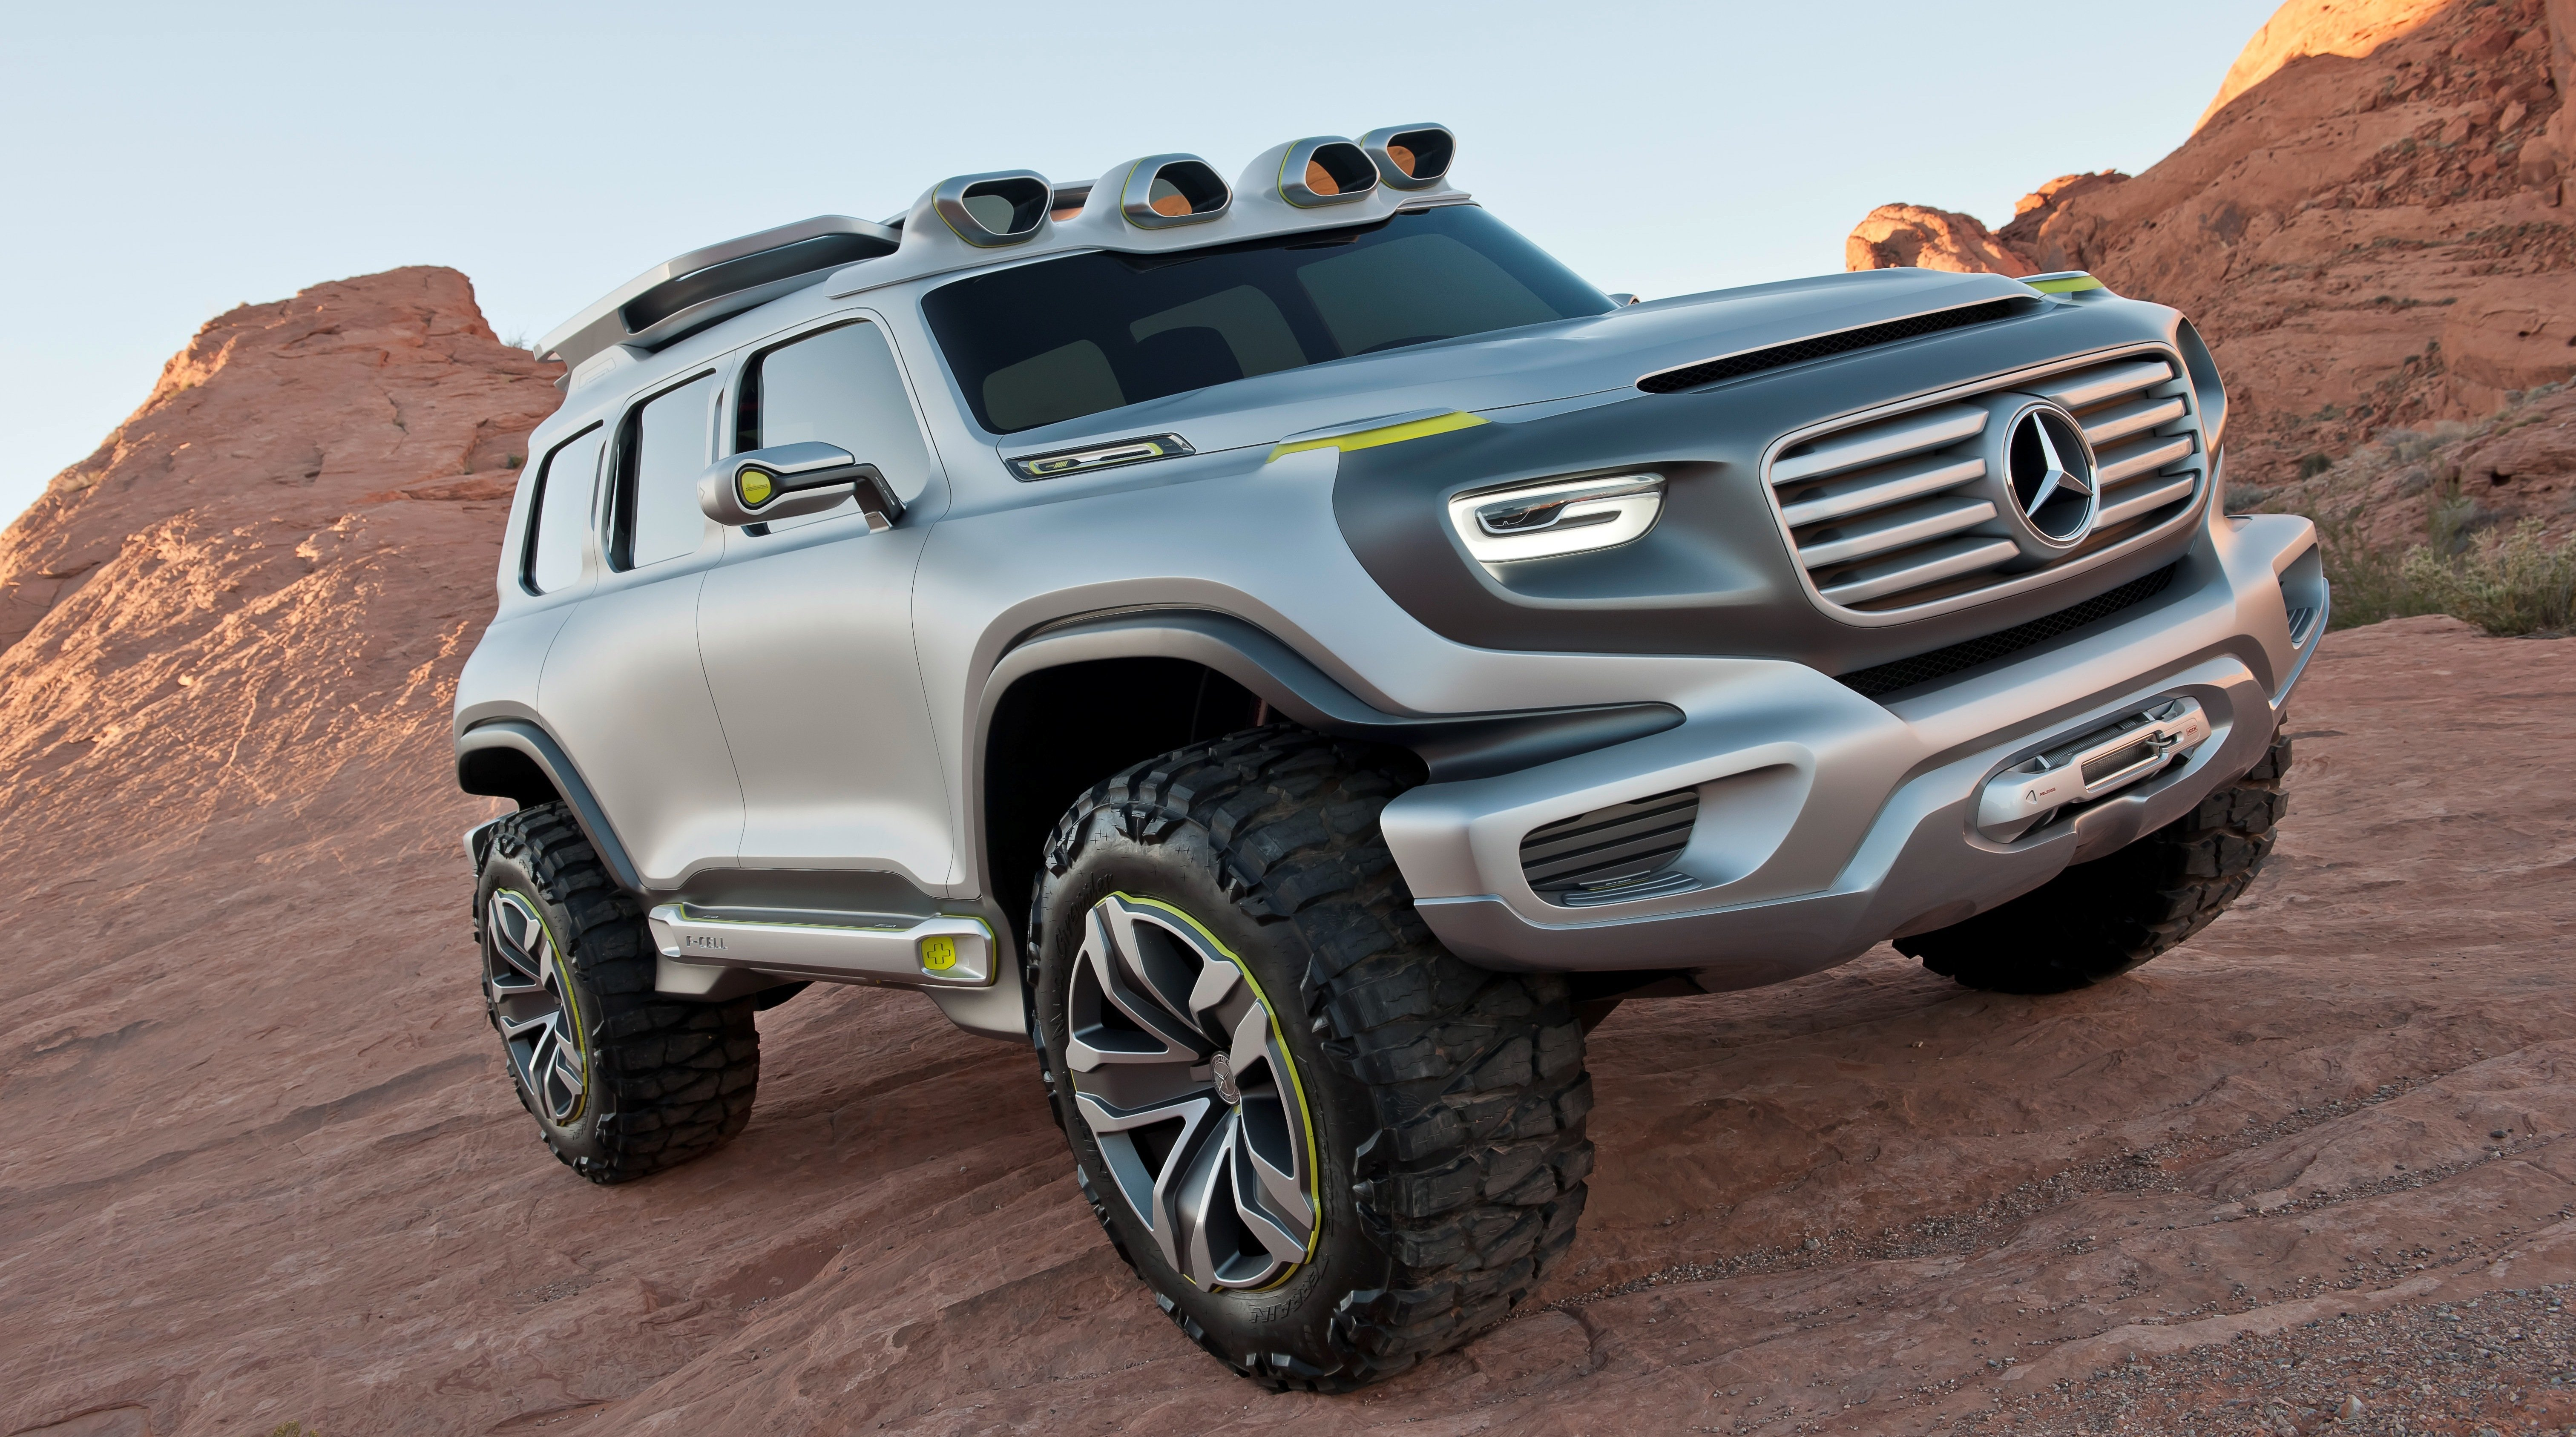 Mercedes is working on a baby G-Class; a smaller utility vehicle